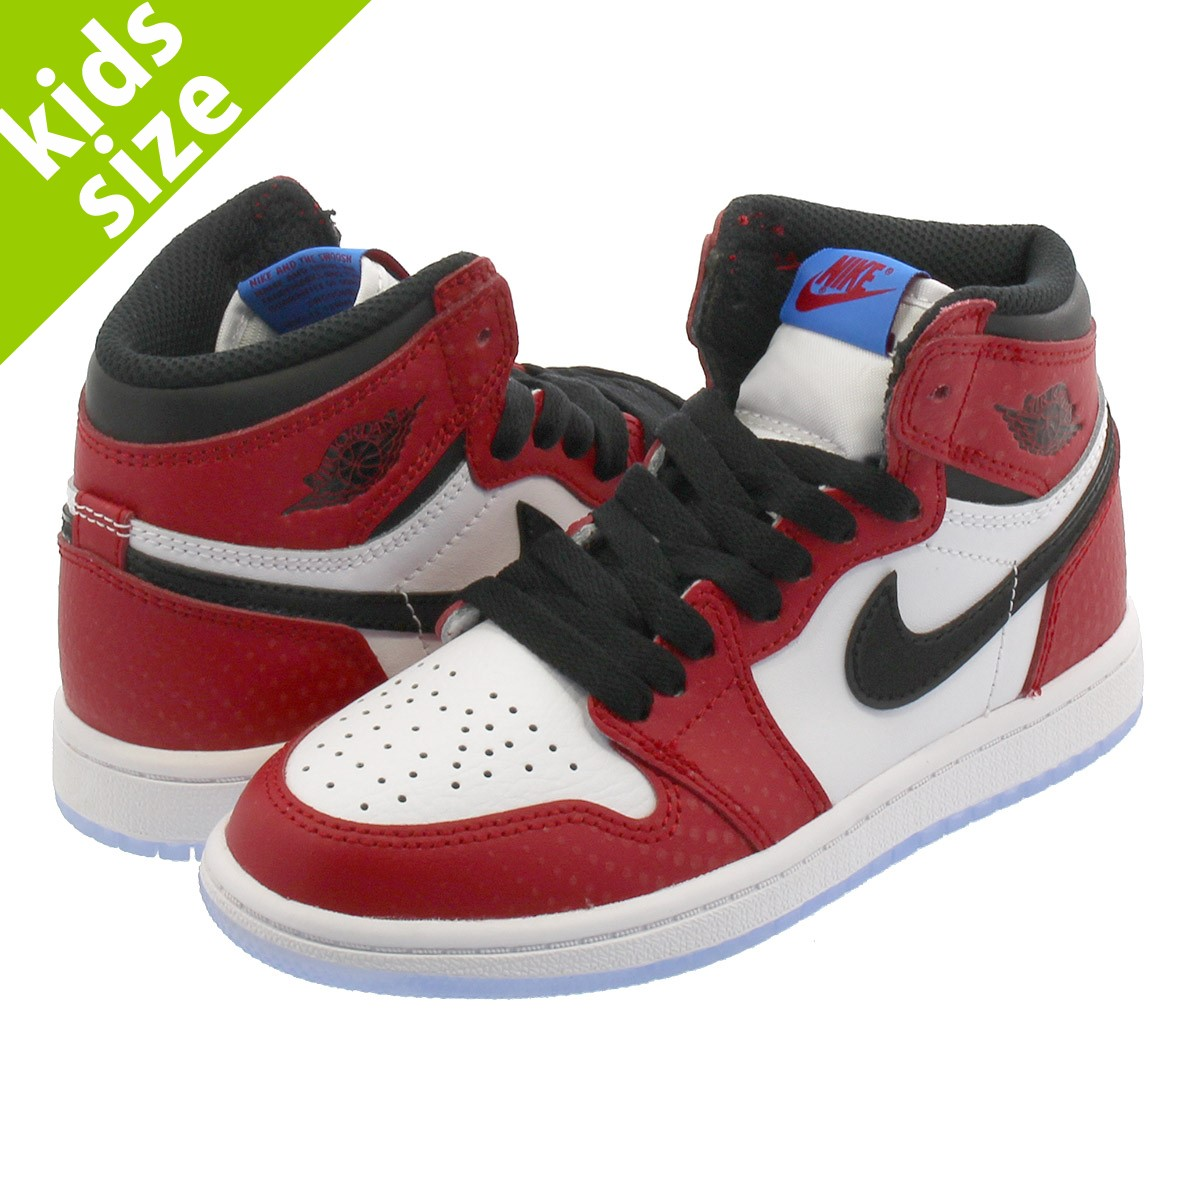 new product 53fac 3b2b8 NIKE AIR JORDAN 1 RETRO HIGH OG BP Nike Air Jordan 1 nostalgic high OG BP  GYM RED/WHITE/PHOTO BLUE/BLACK